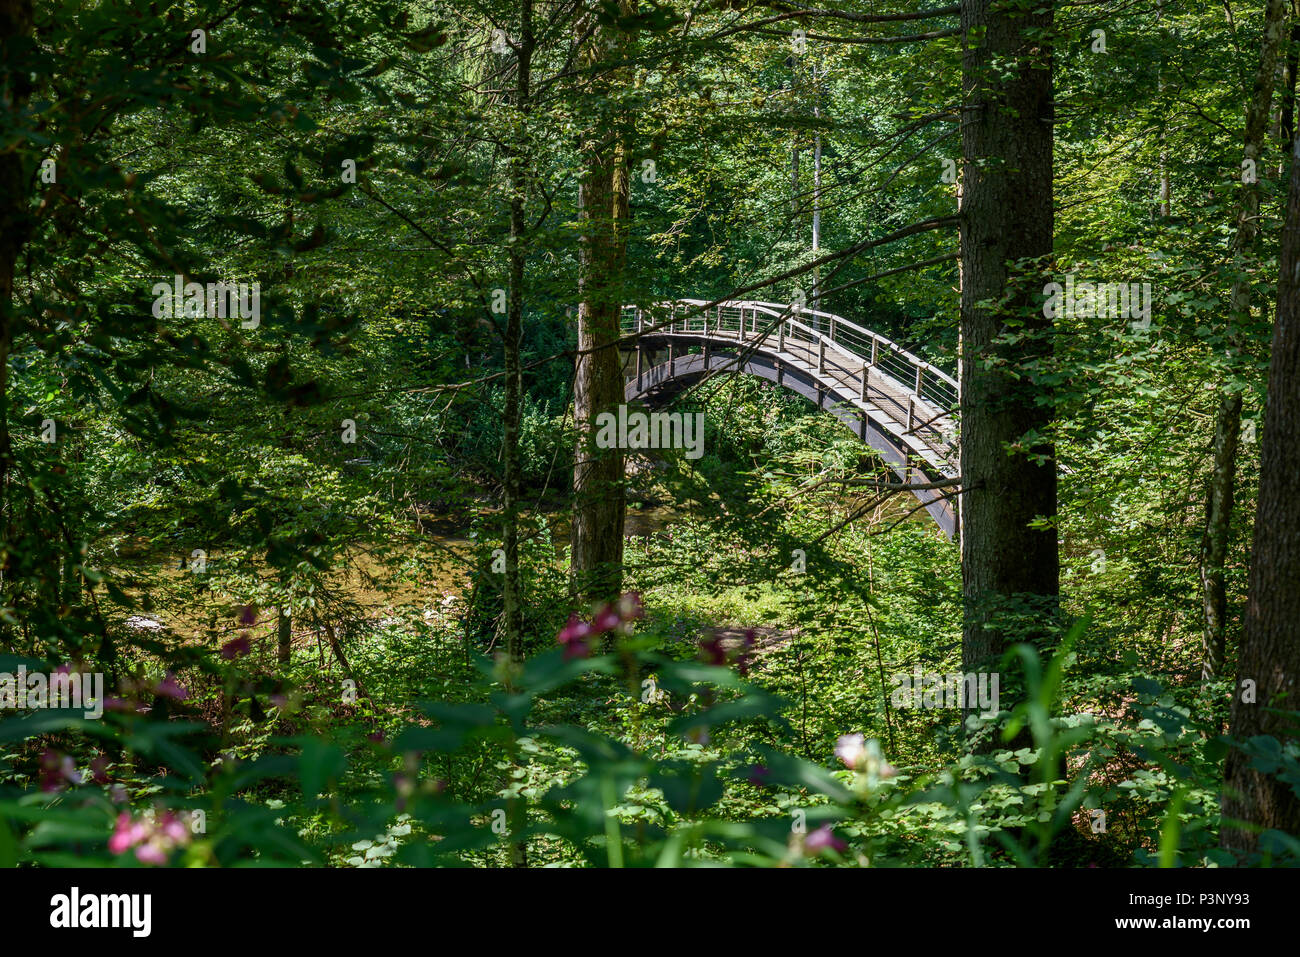 Wutach Gorge with river and bridge - Walking in beautiful landscape of the blackforest, Germany - Stock Image